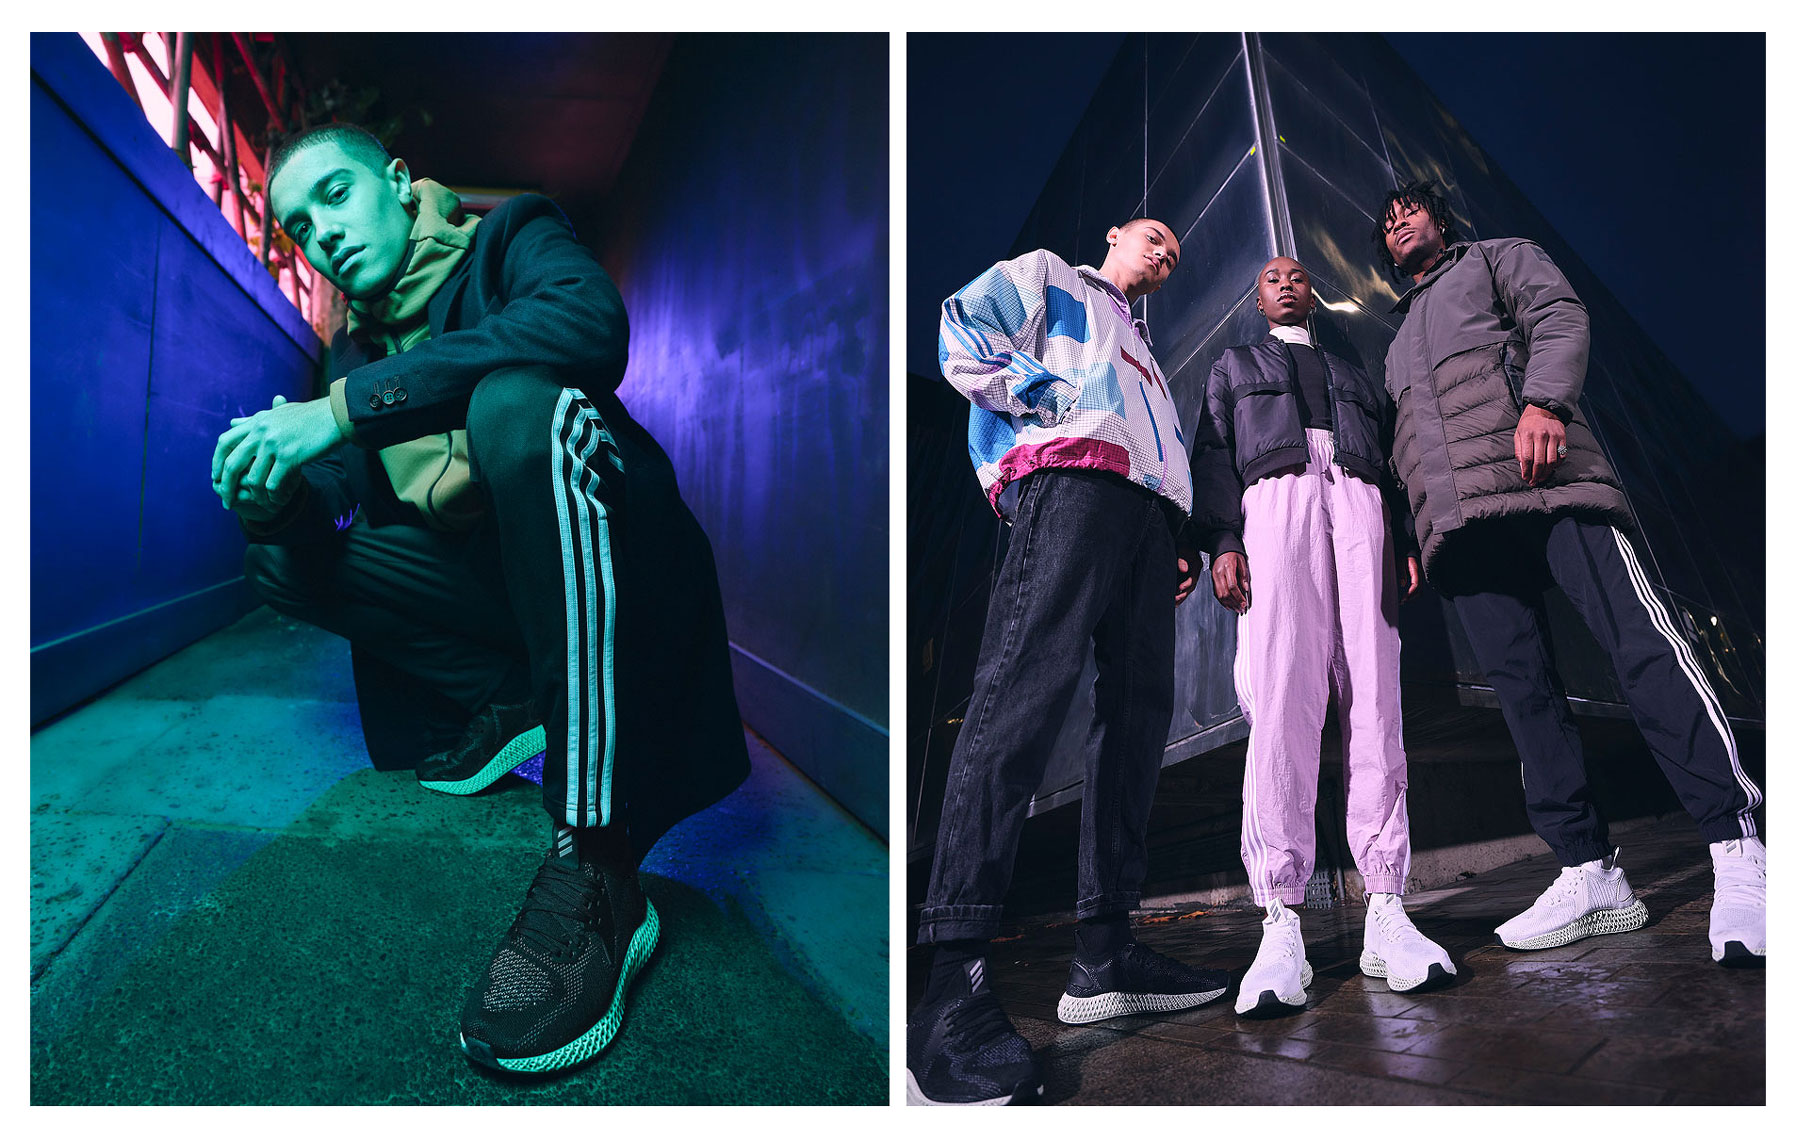 issie-gibbons-fashion-stylist-adidas-london-campaign-4d-urban-night-josh-greet-the-midnight-club